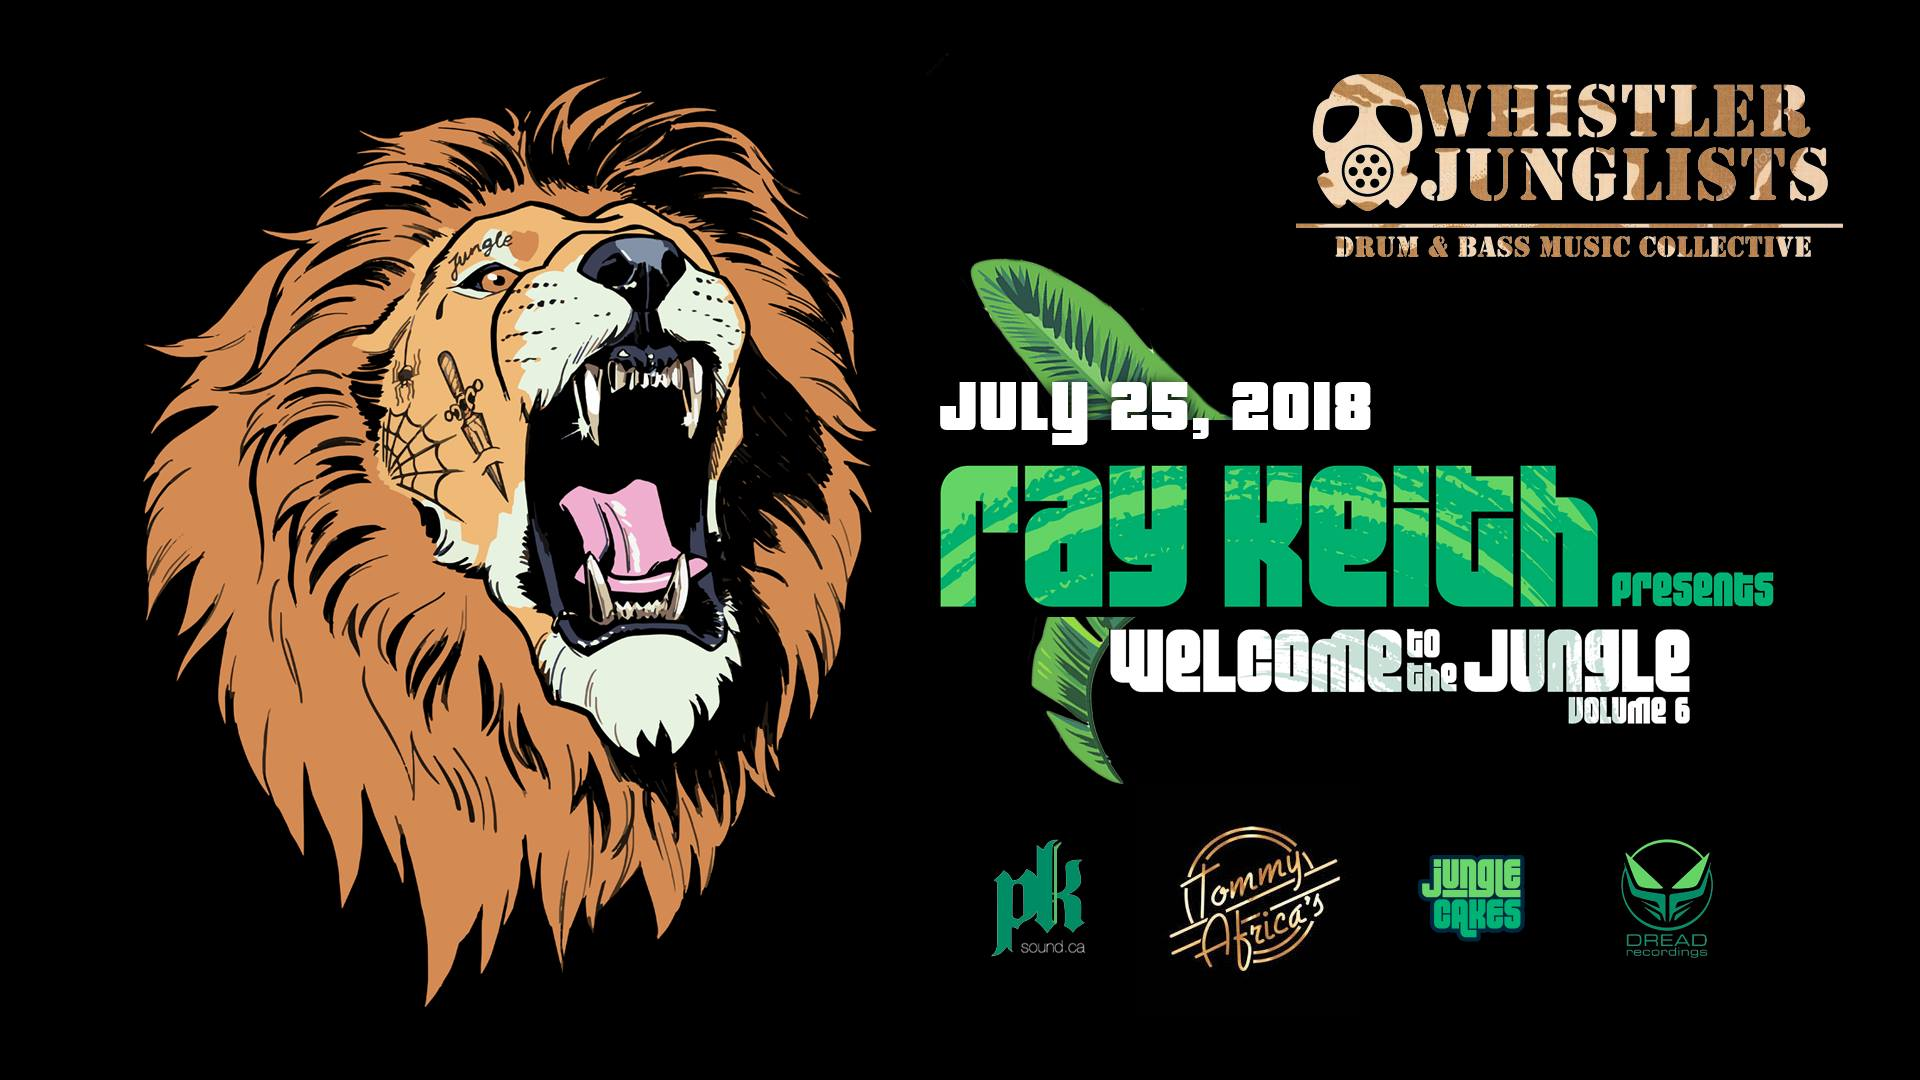 Ray Keith in Whistler July 25